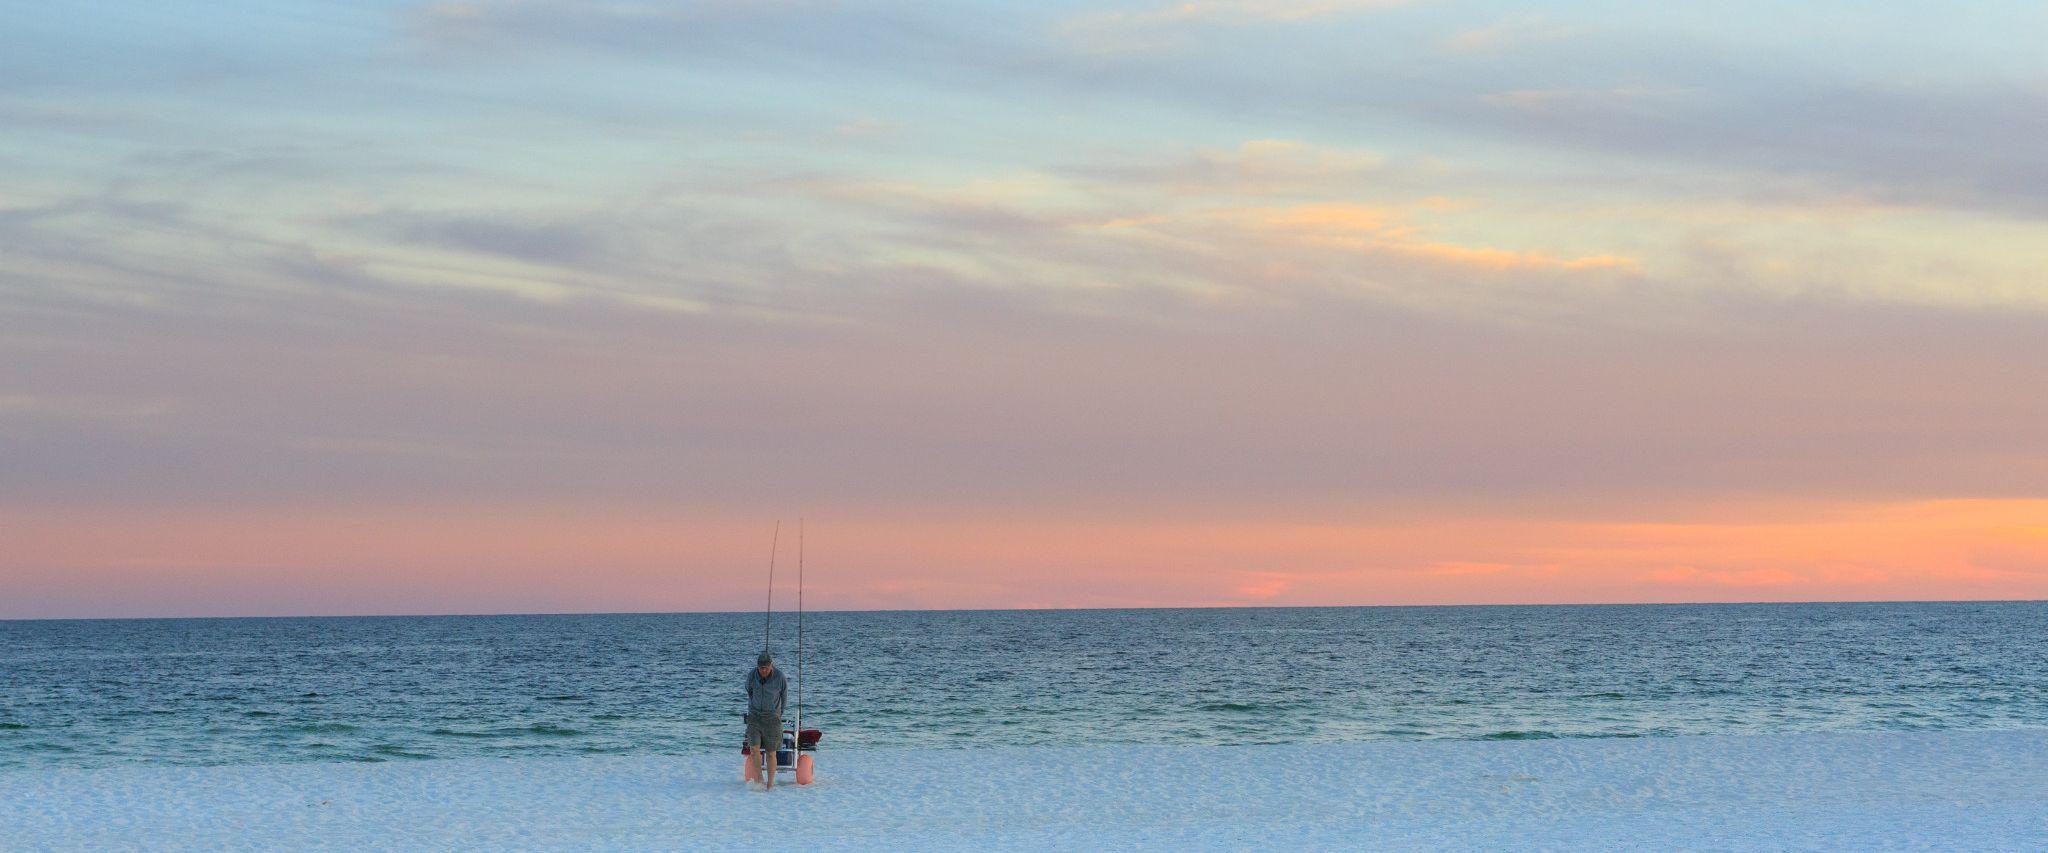 Shore fishing on the beach in Gulf Shores AL